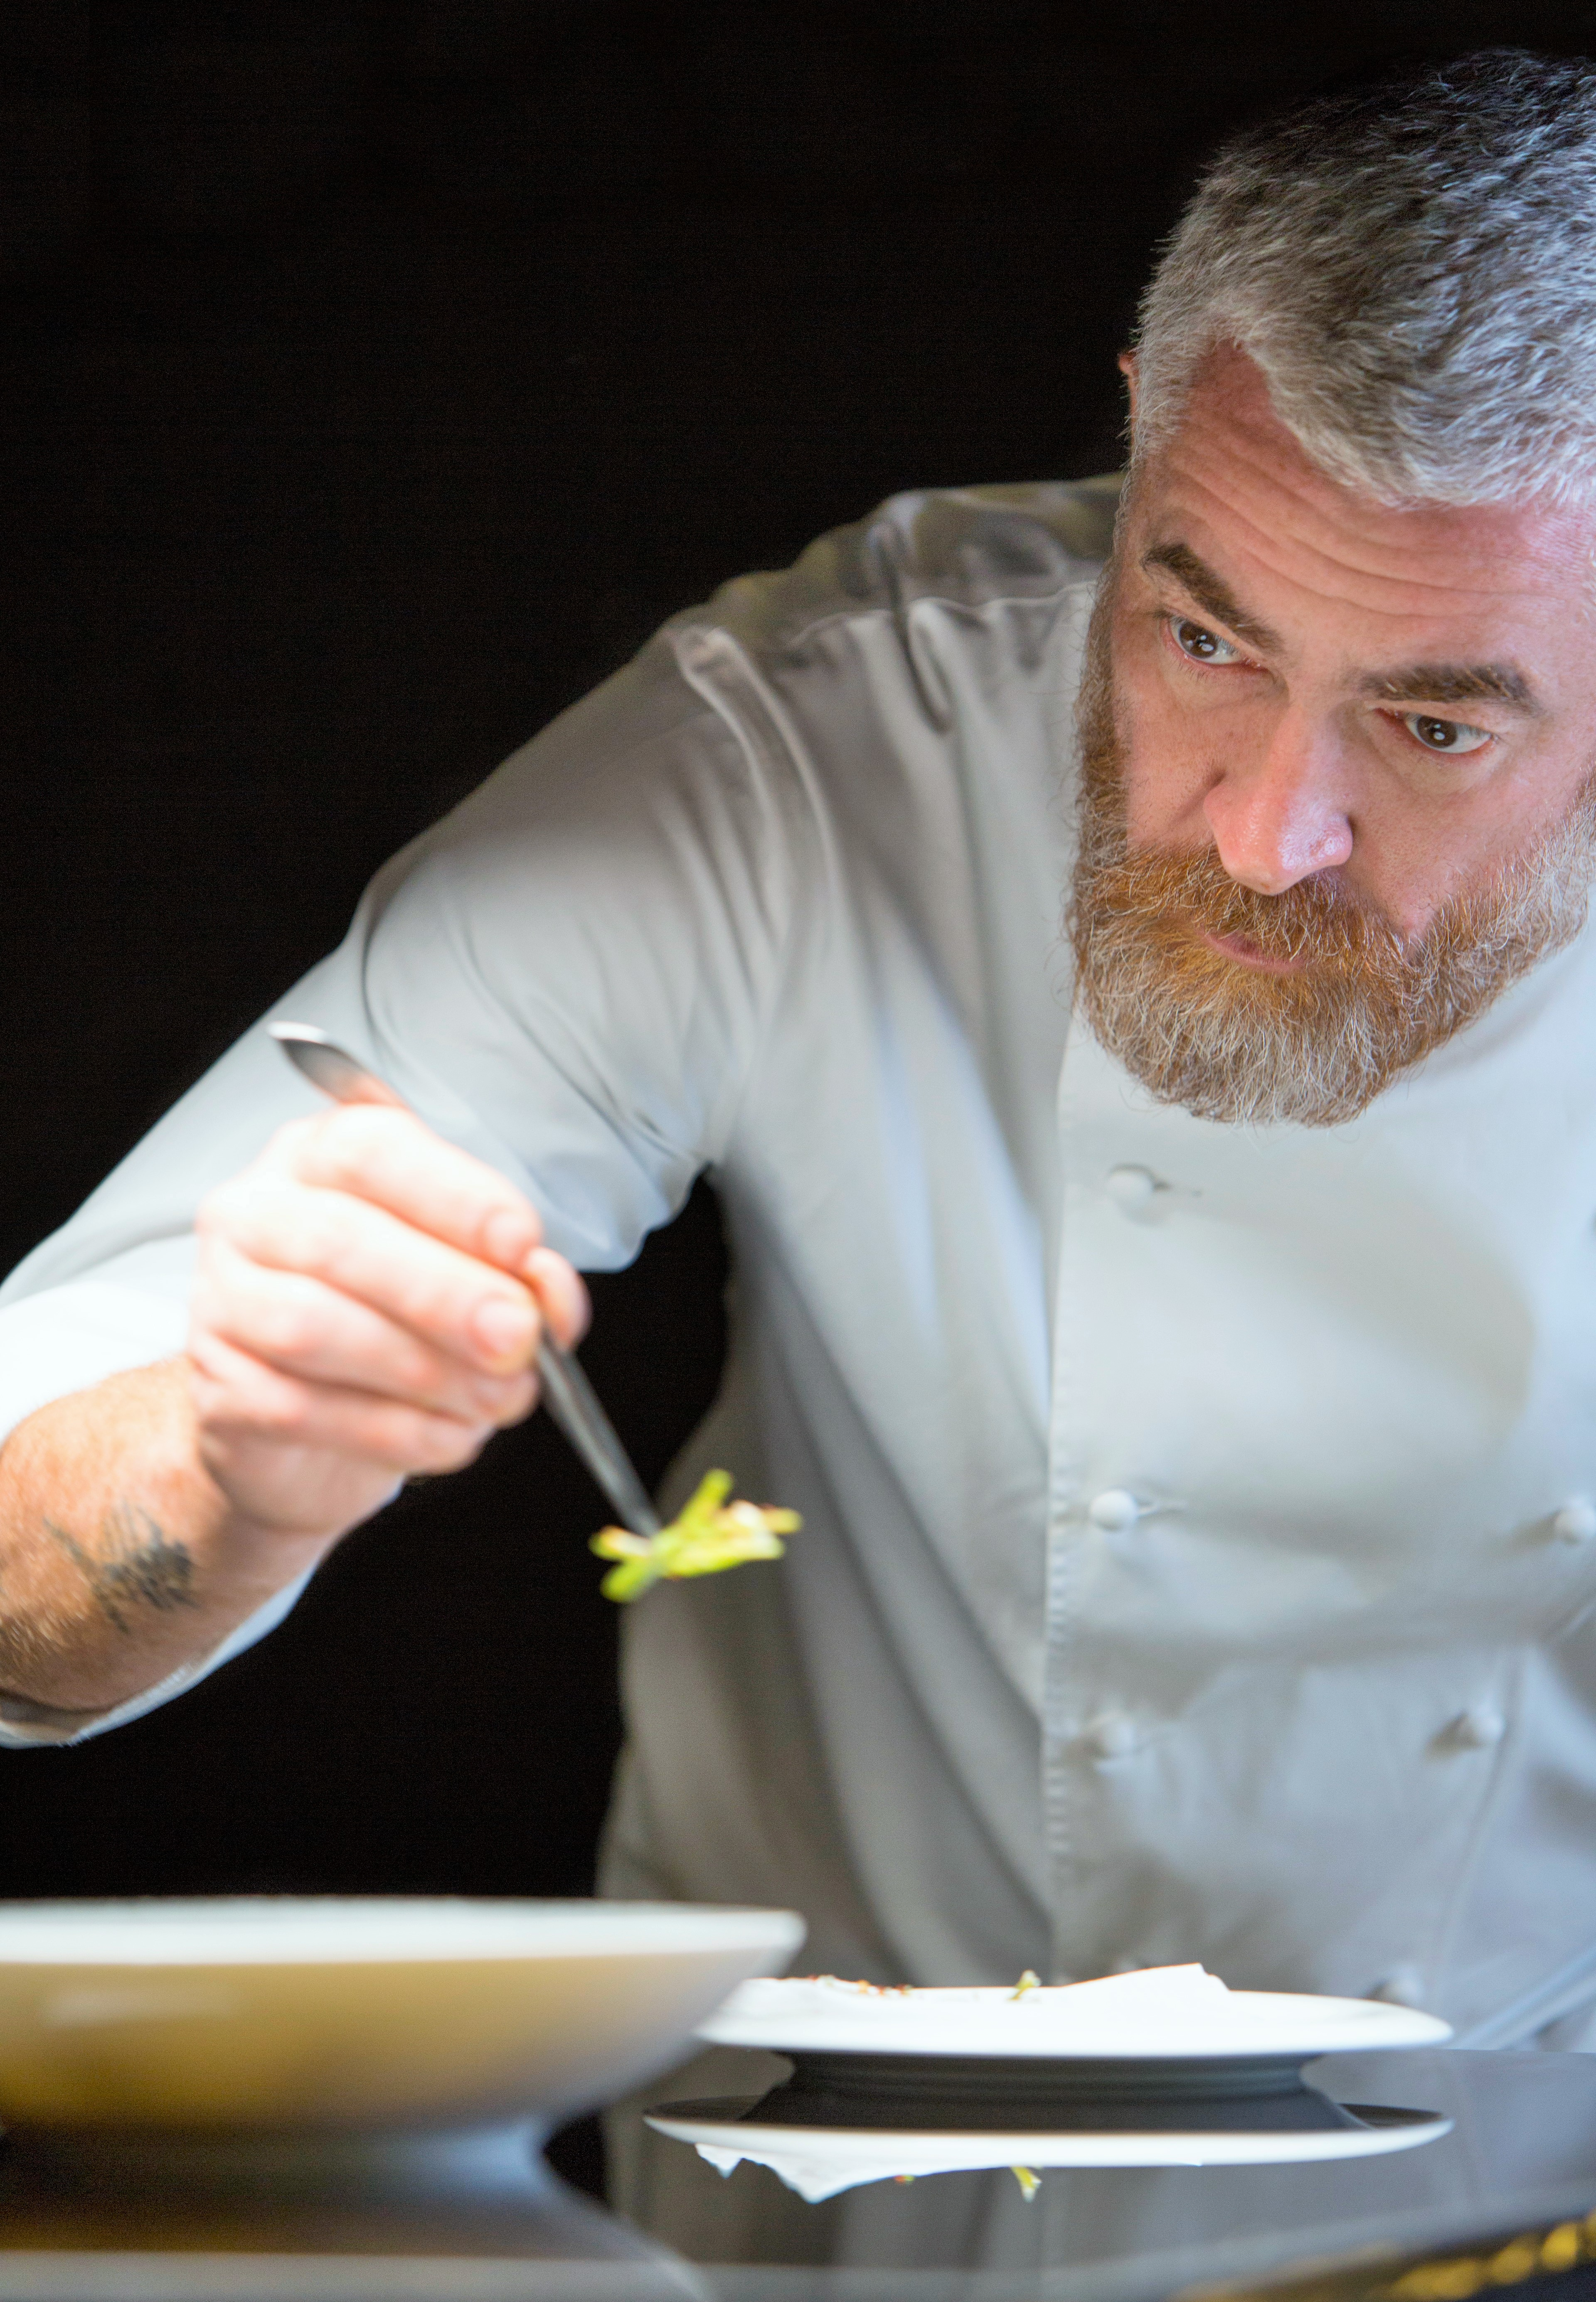 Tremendous Make A Reservation For Season 2 Of Chefs Table Latf Usa Download Free Architecture Designs Grimeyleaguecom